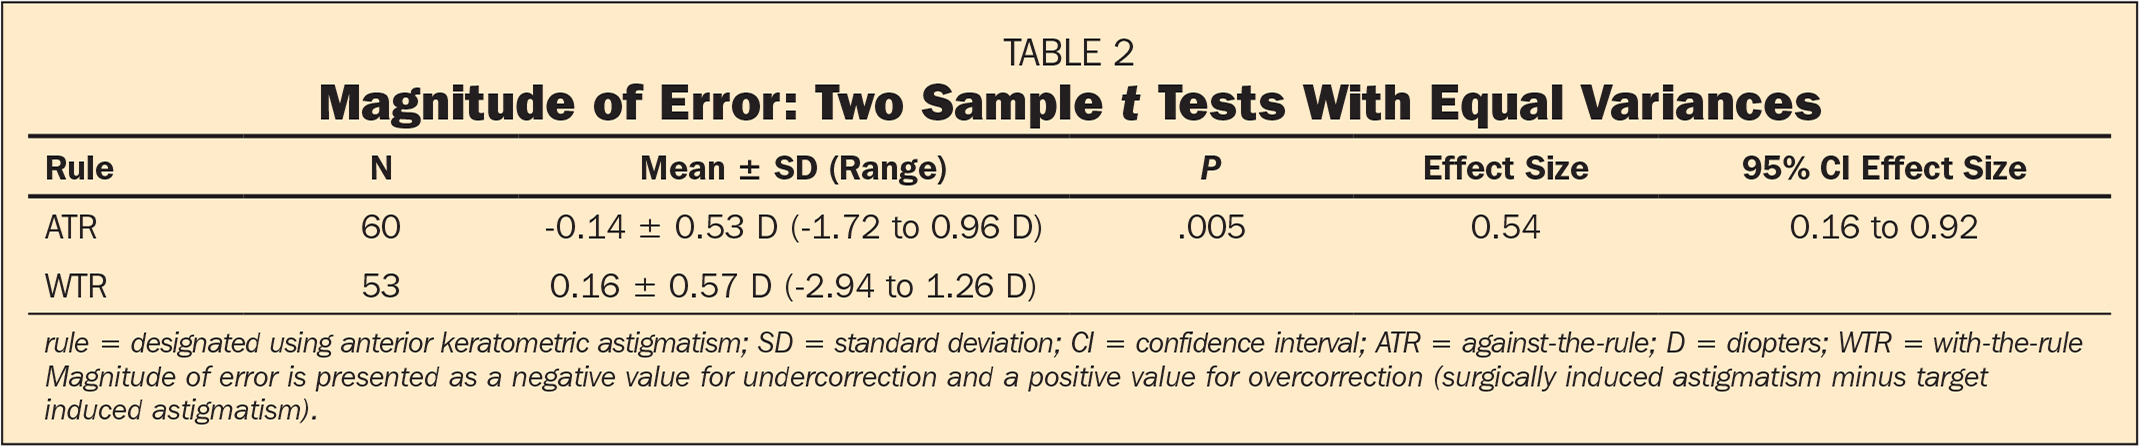 Magnitude of Error: Two Sample t Tests With Equal Variances